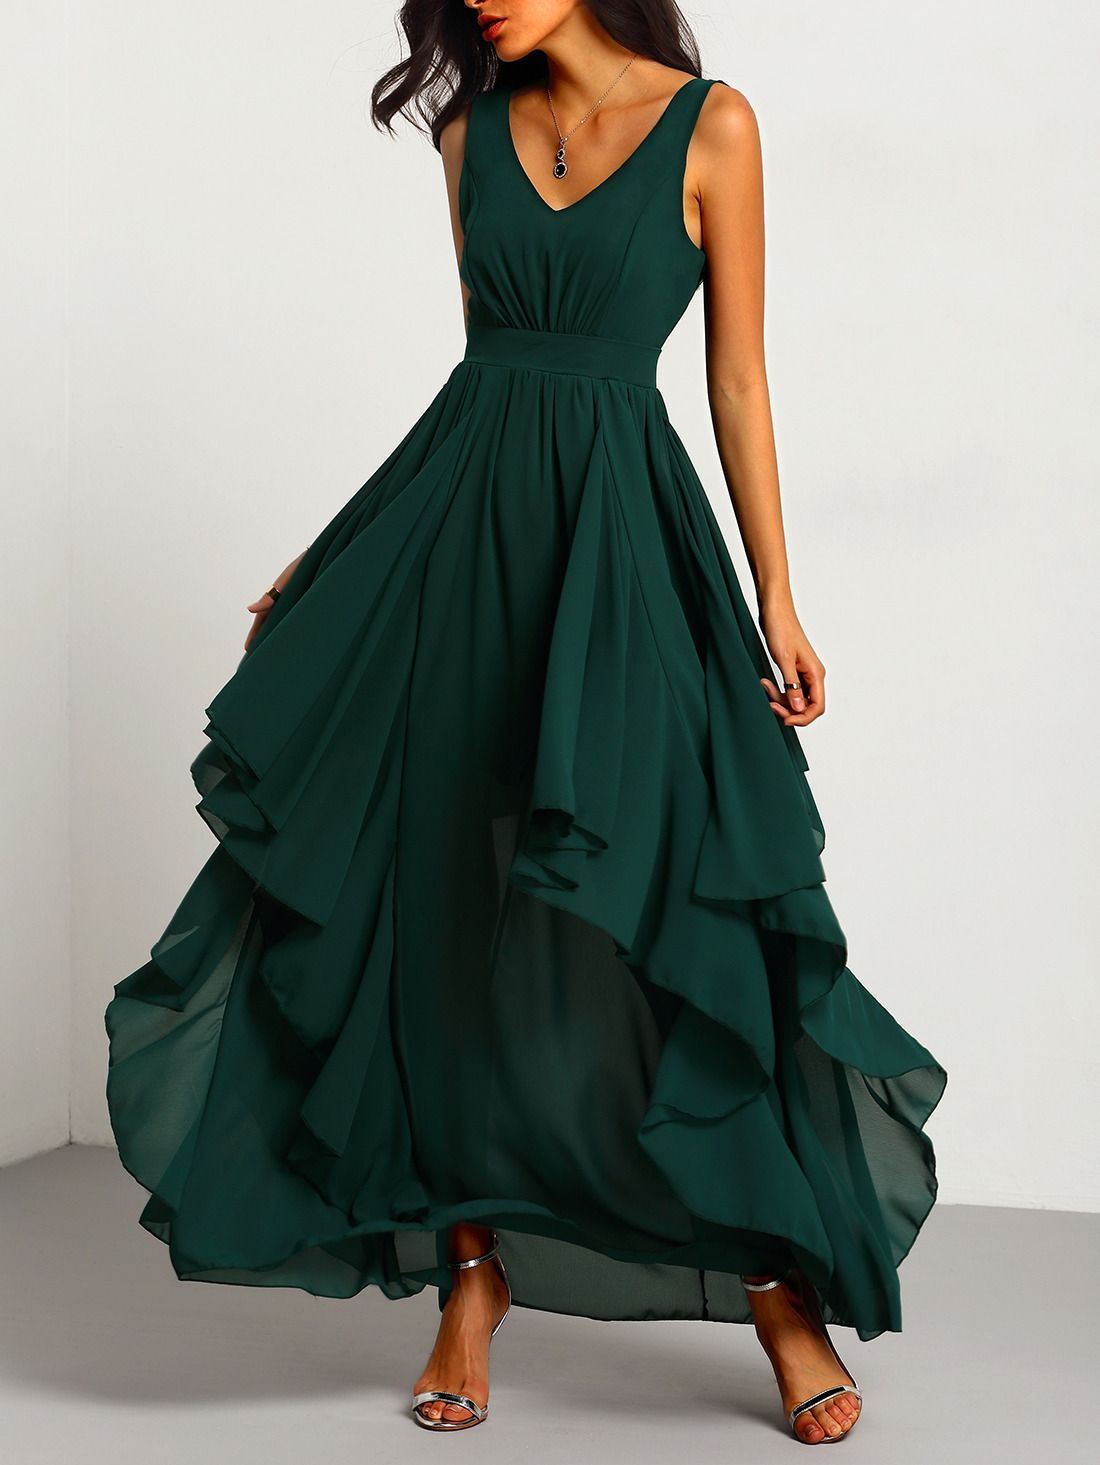 1f6c11b997 Shop Green Deep V Neck Maxi Chiffon Dress online. SheIn offers Green Deep V  Neck Maxi Chiffon Dress   more to fit your fashionable needs.